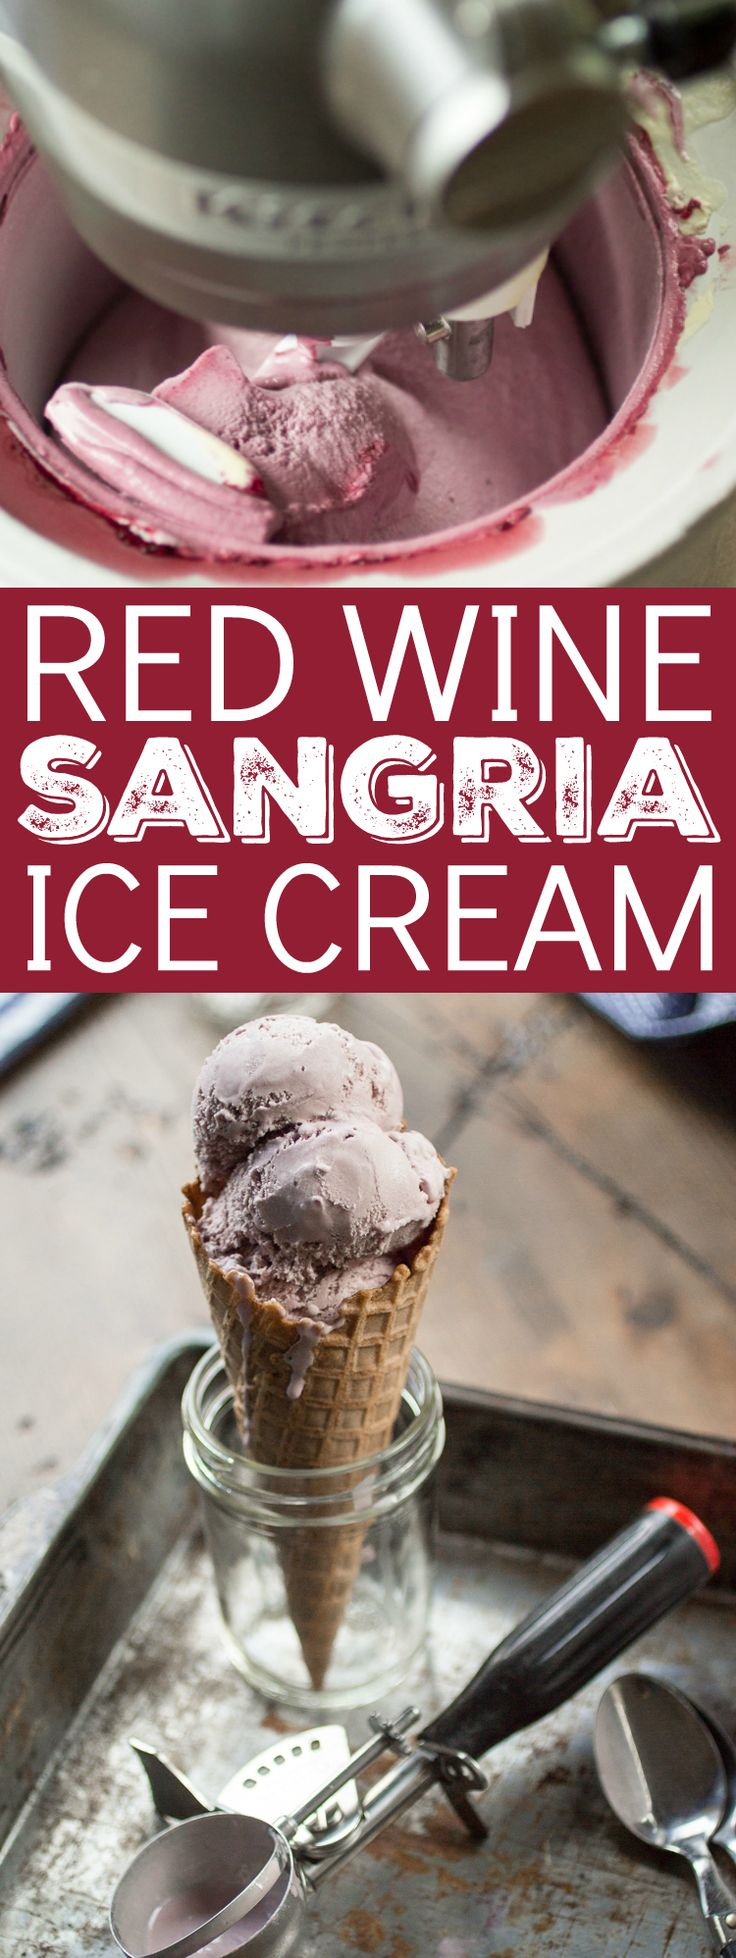 Red wine, Cointreau, and Blackberries add a burst of flavor to this delicious Sangria Ice Cream!